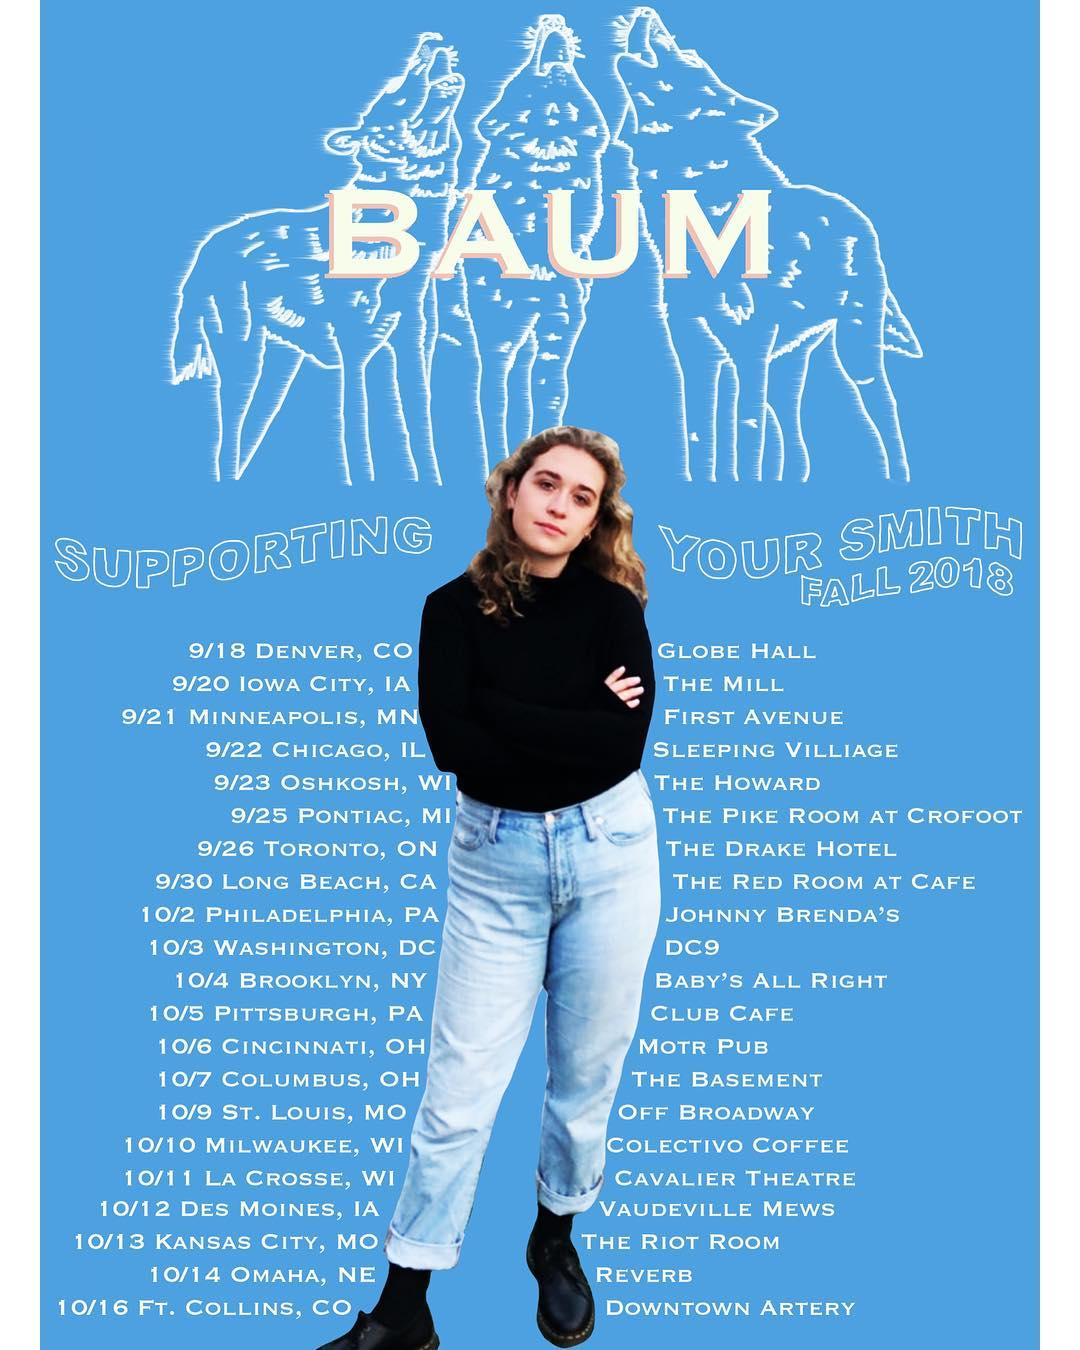 BAUM supporting Your Smith - September 18 - October 14, 2018